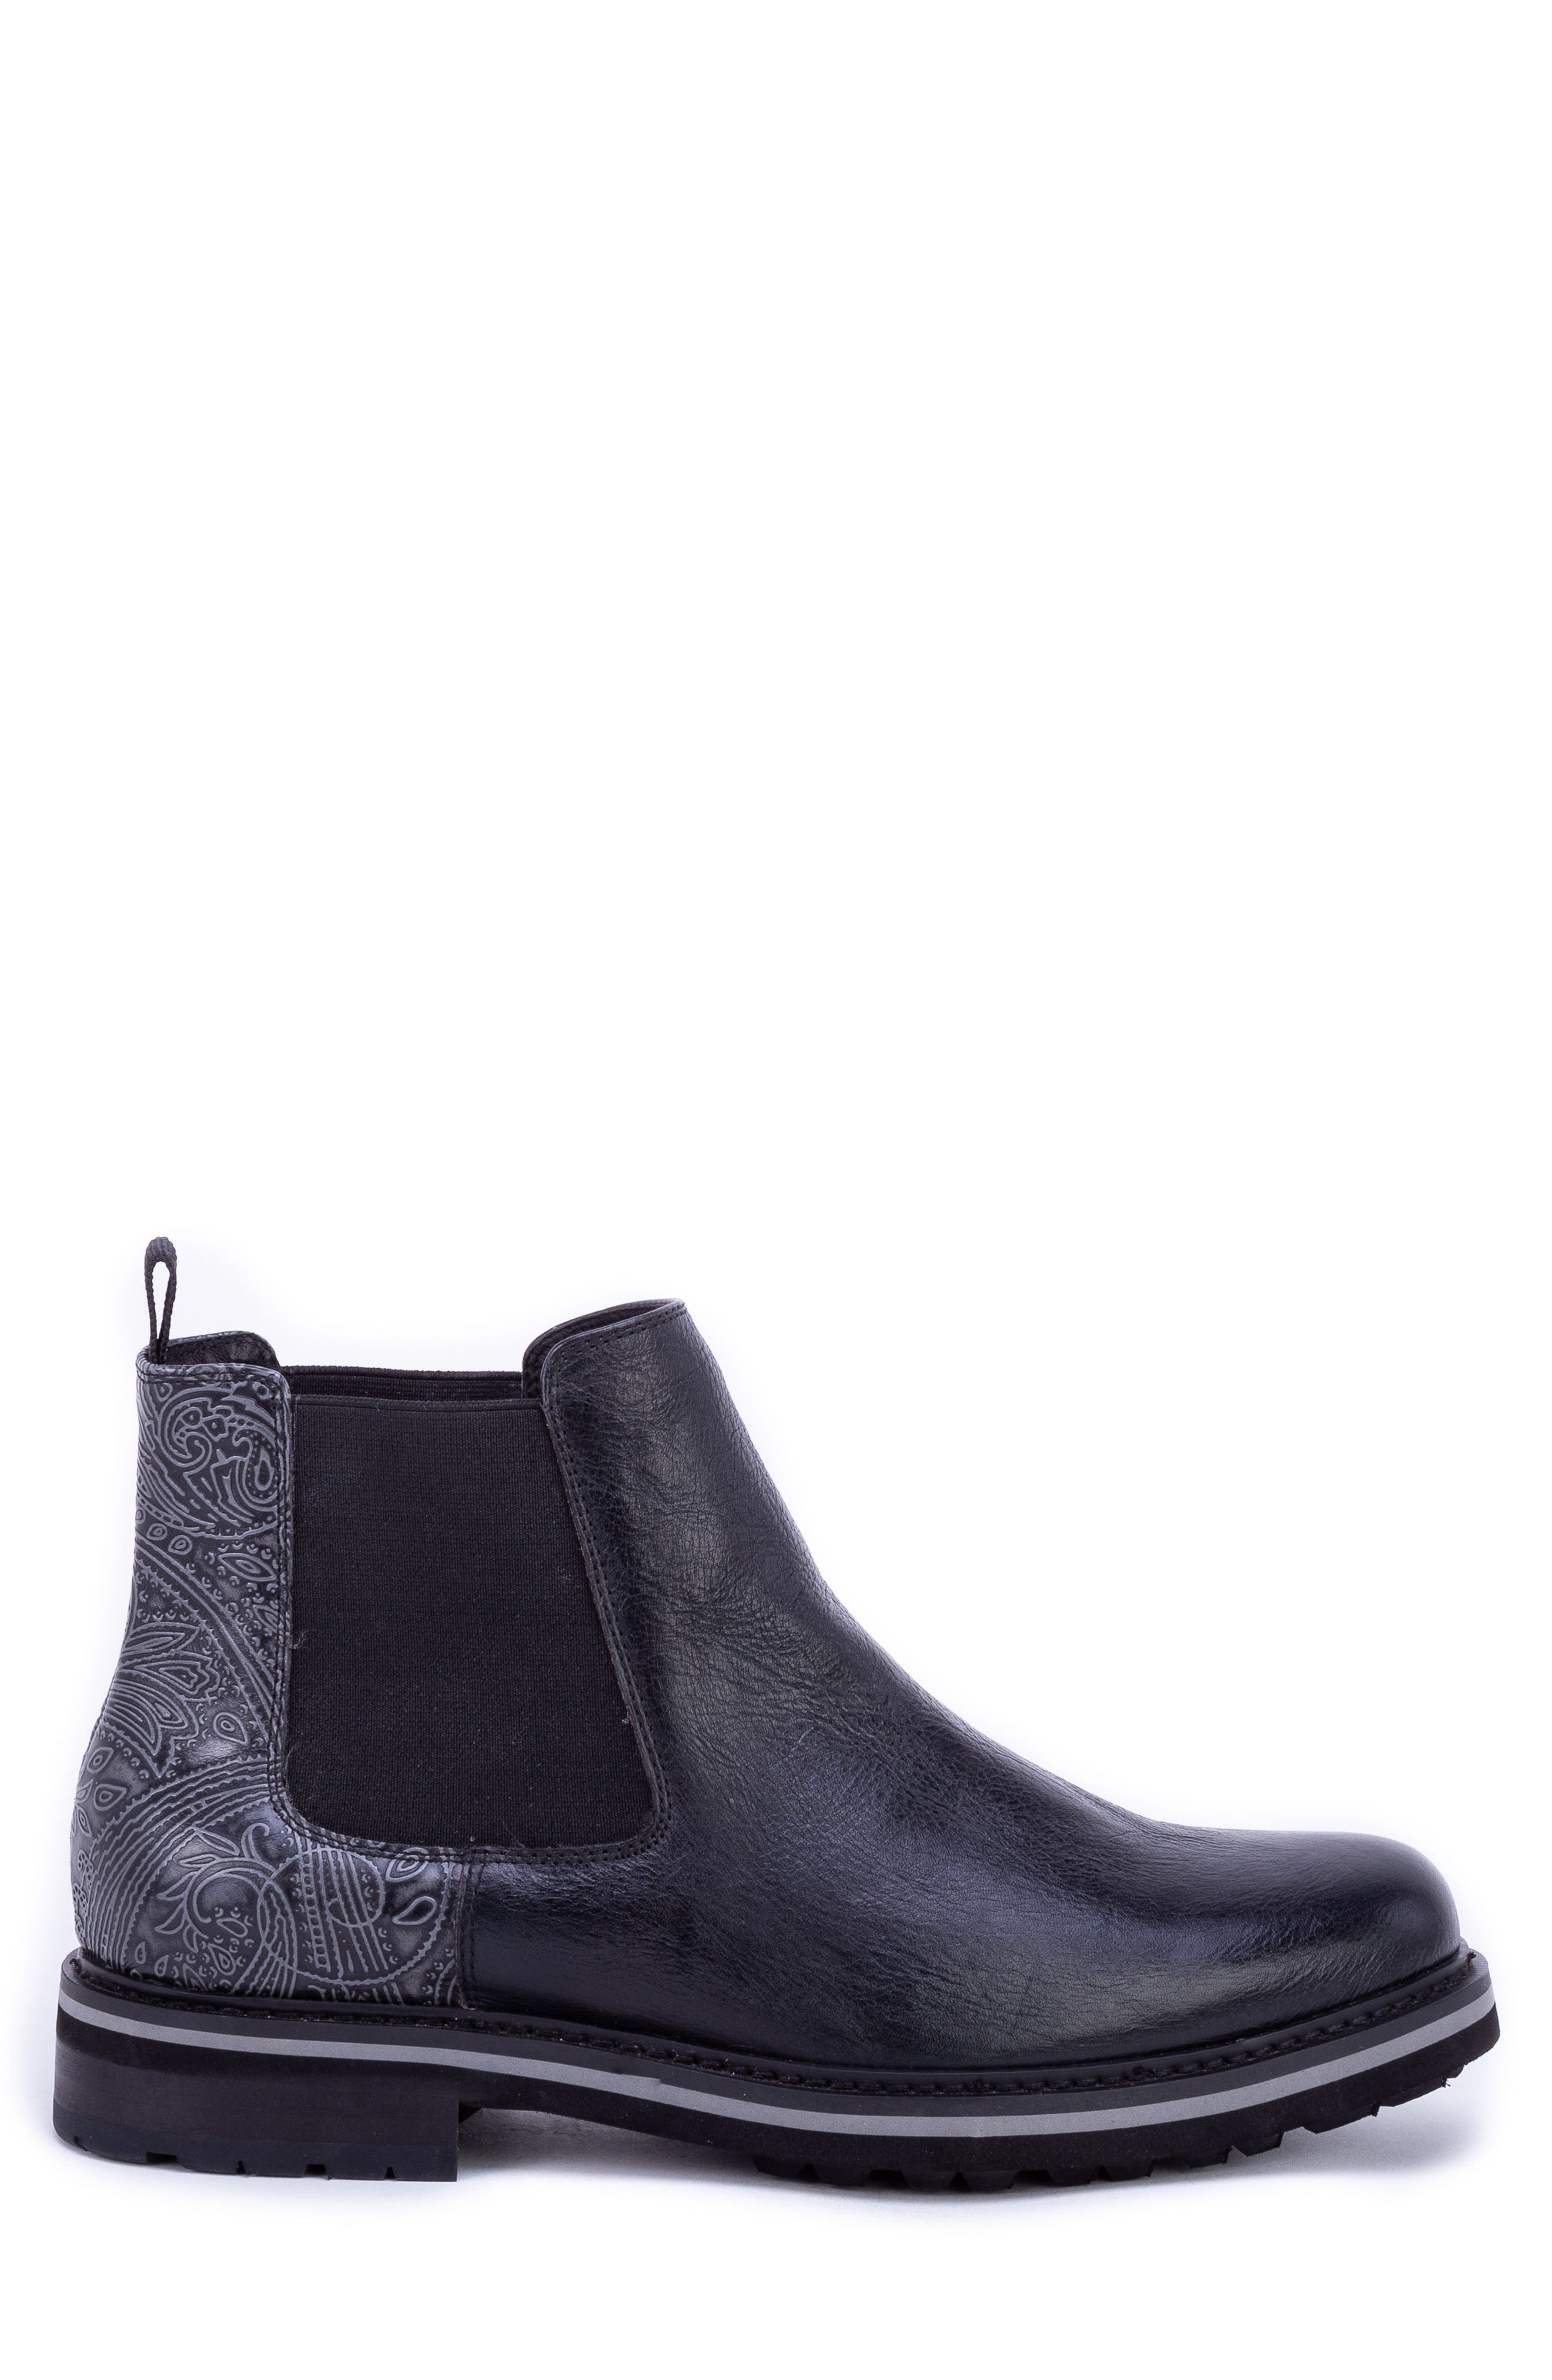 Yates Textured Chelsea Boot,                             Alternate thumbnail 3, color,                             BLACK LEATHER